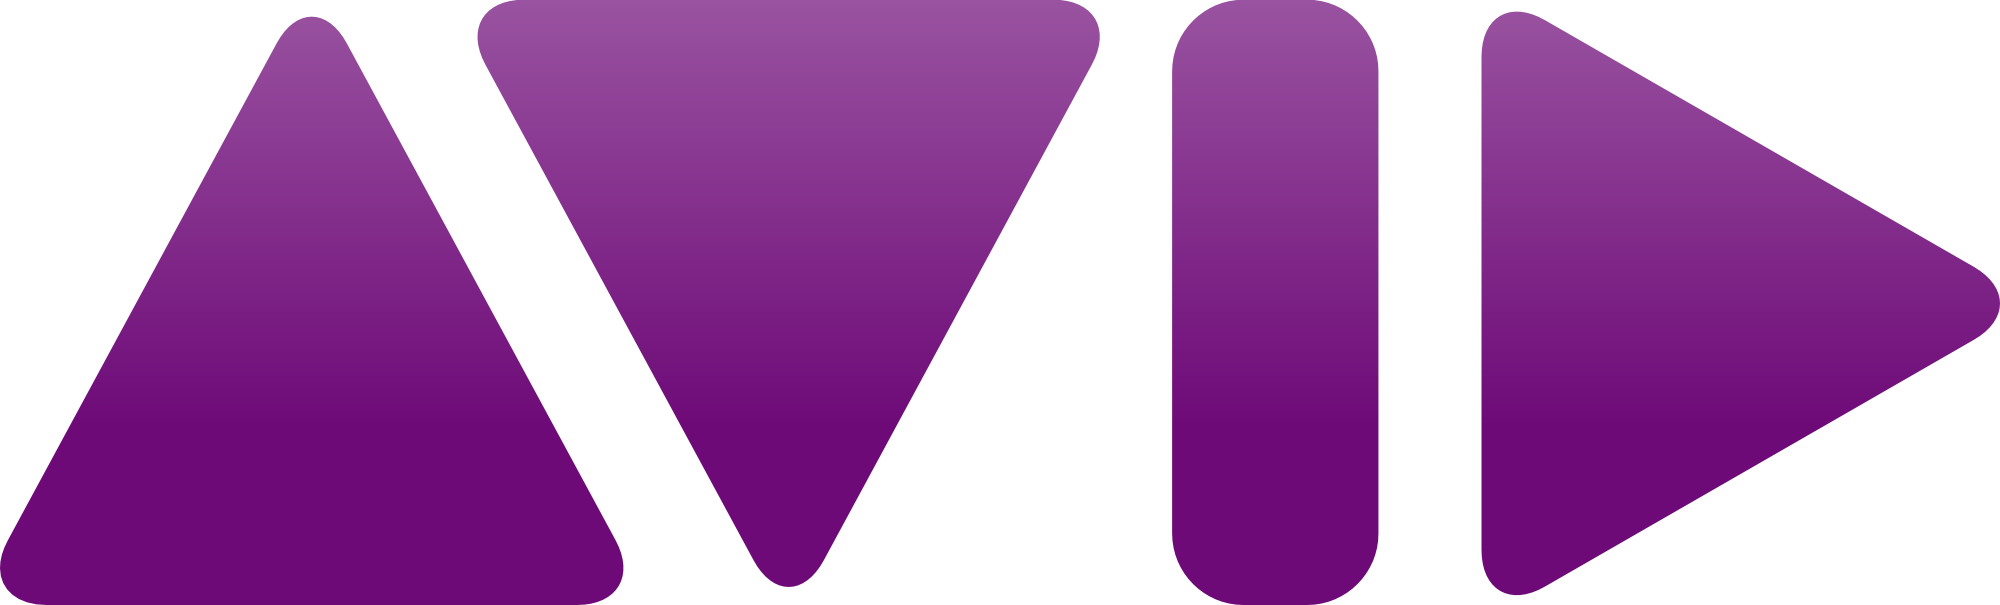 Pro tools logo png. Win a rig from